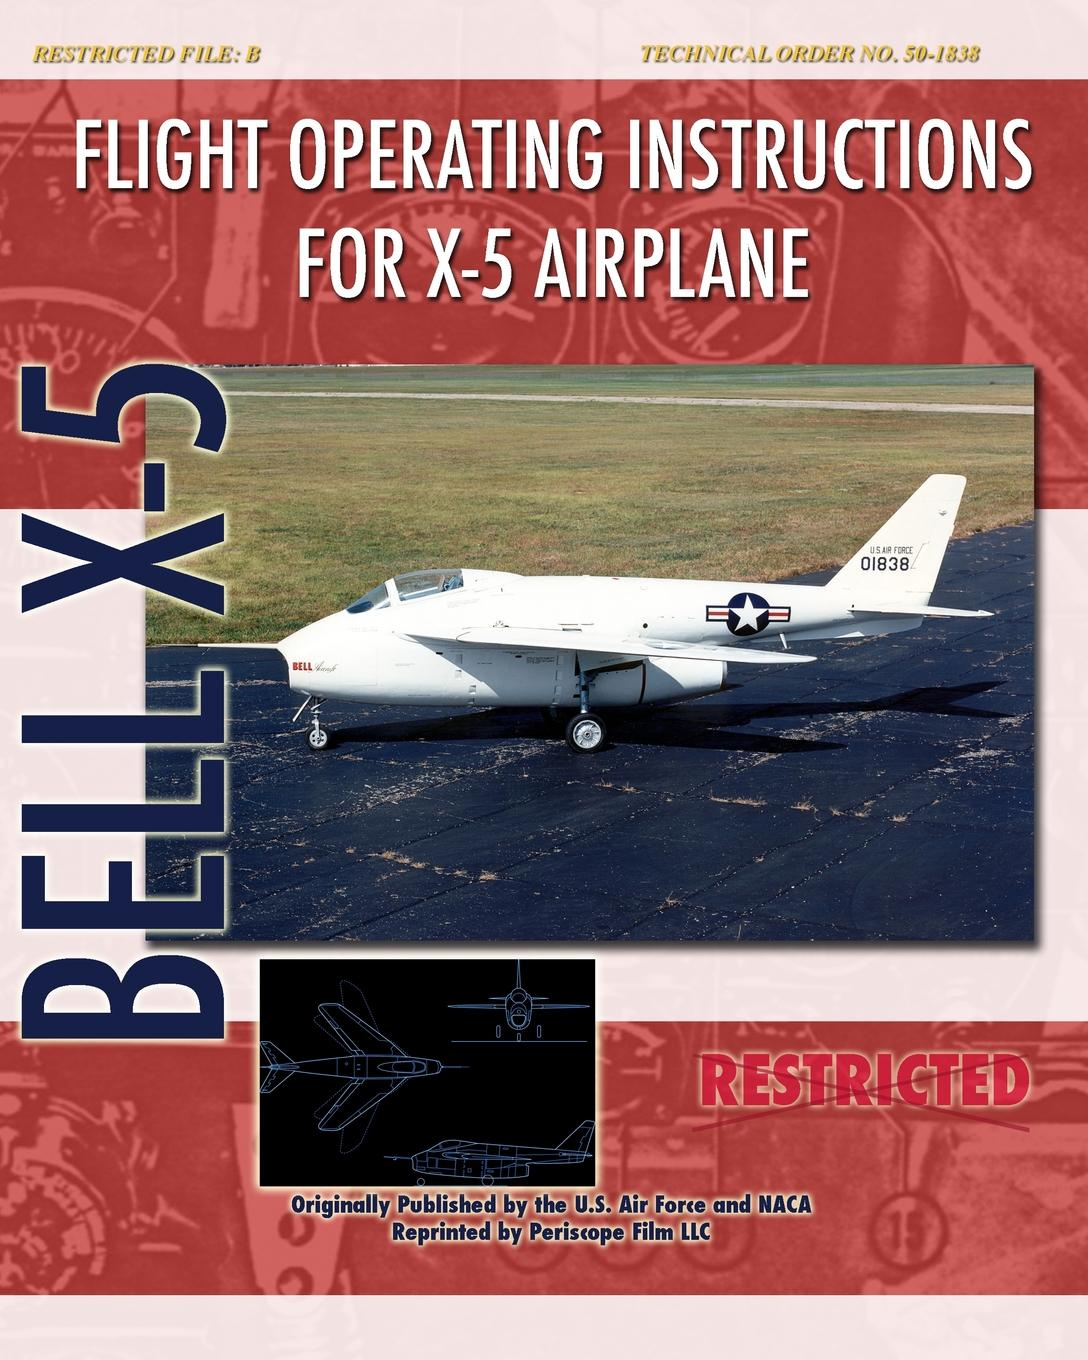 United States Air Force Flight Operating Instructions for X-5 Airplane